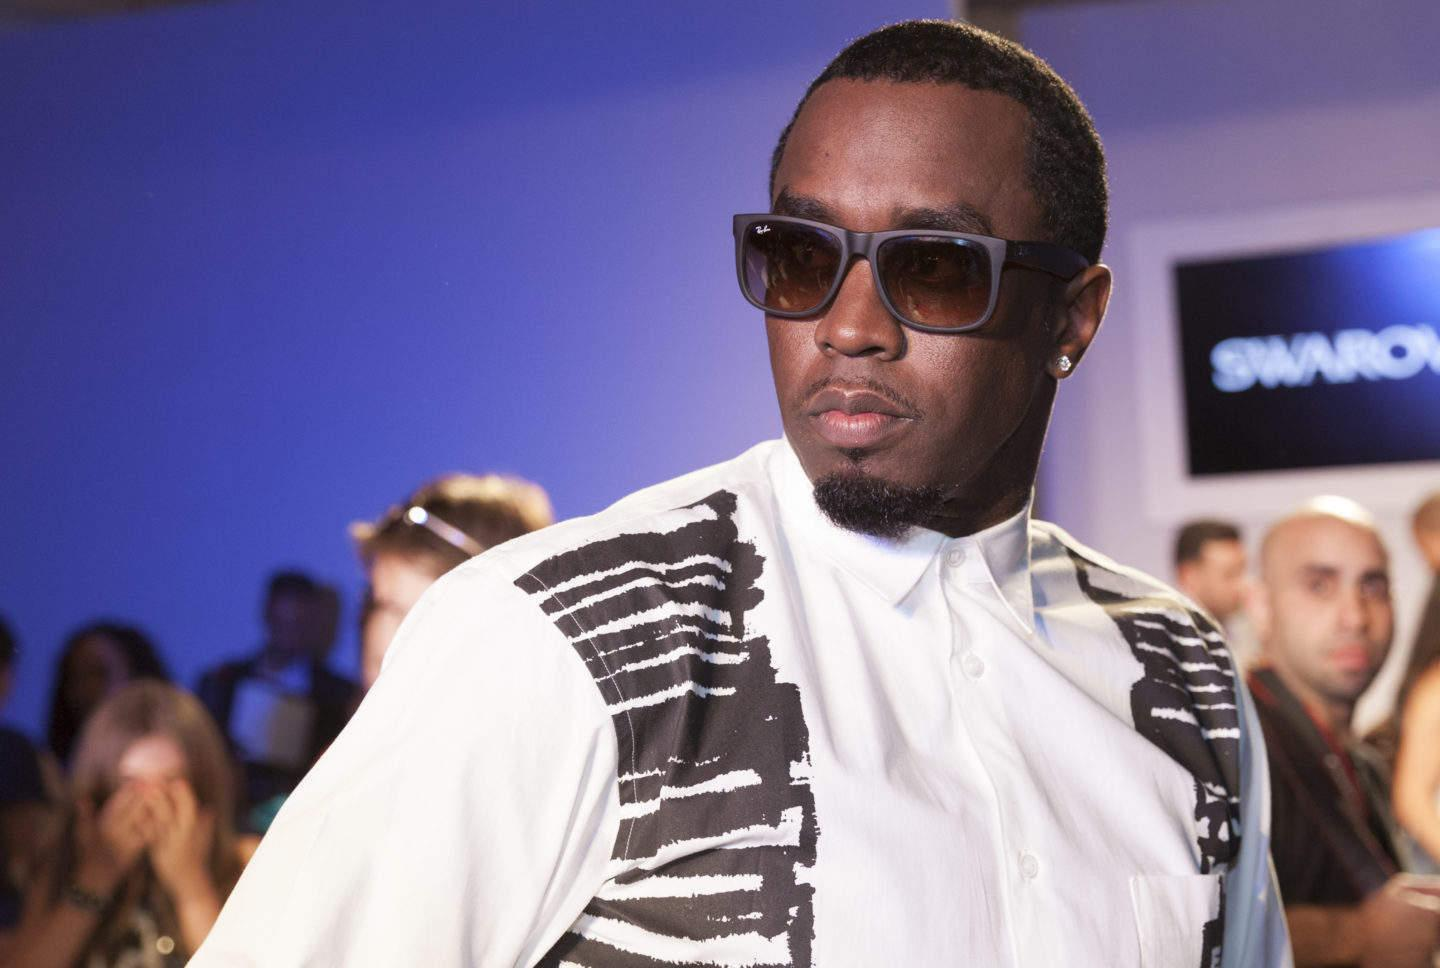 Diddy Posts Hospital Footage Of His Fourth Surgery In Two Years - See The Video